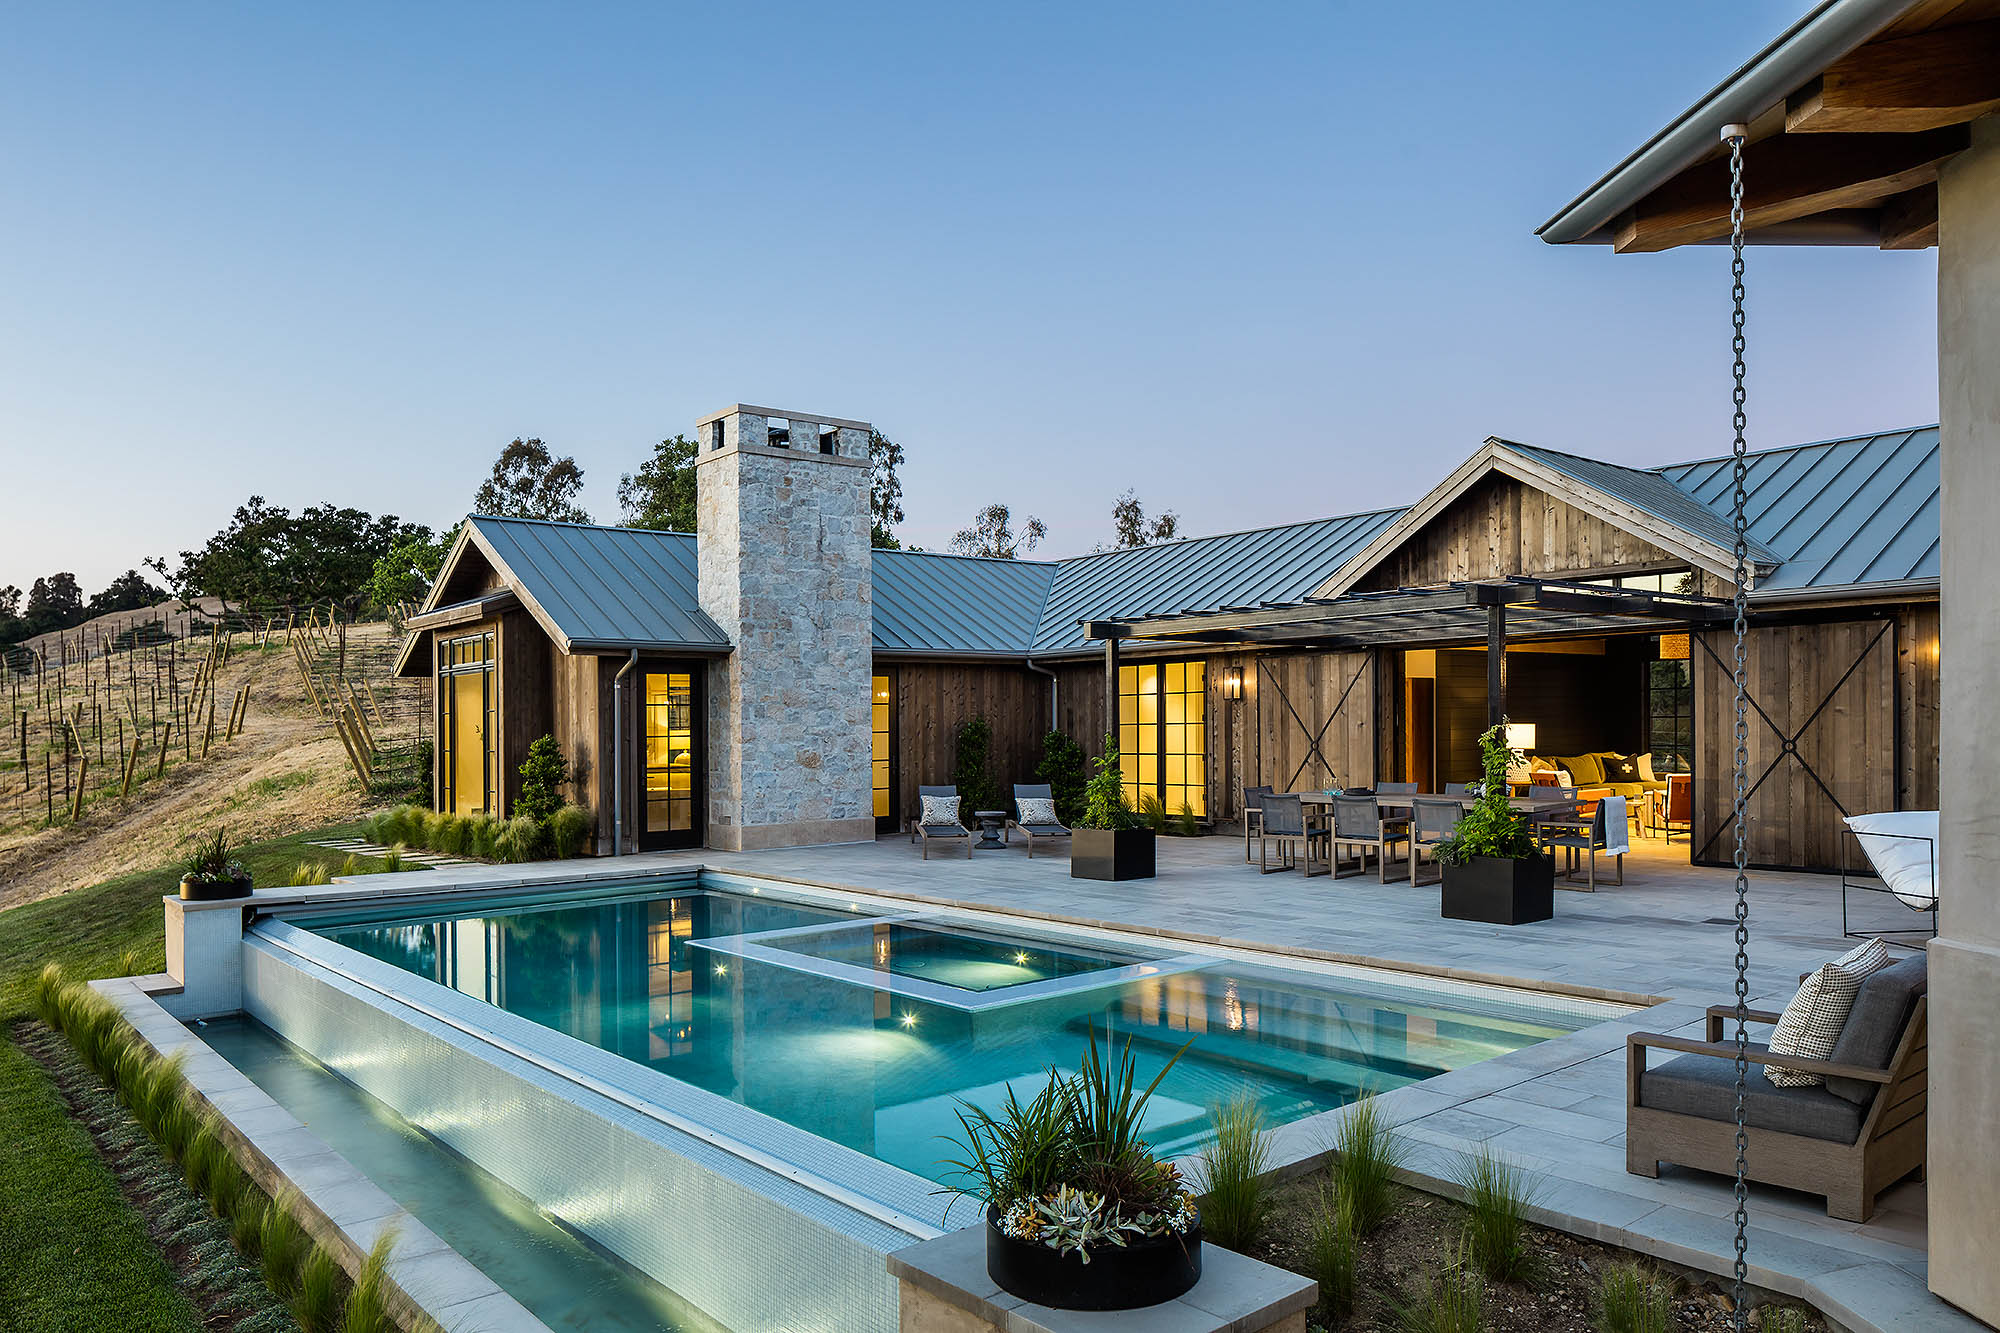 PROJECT SANTA YNEZ // PATTERSON CUSTOM HOMES // BRANDON ARCHITECTS // BLACKBAND DESIGN // MANOLO LANGIS PHOTOGRAPHY